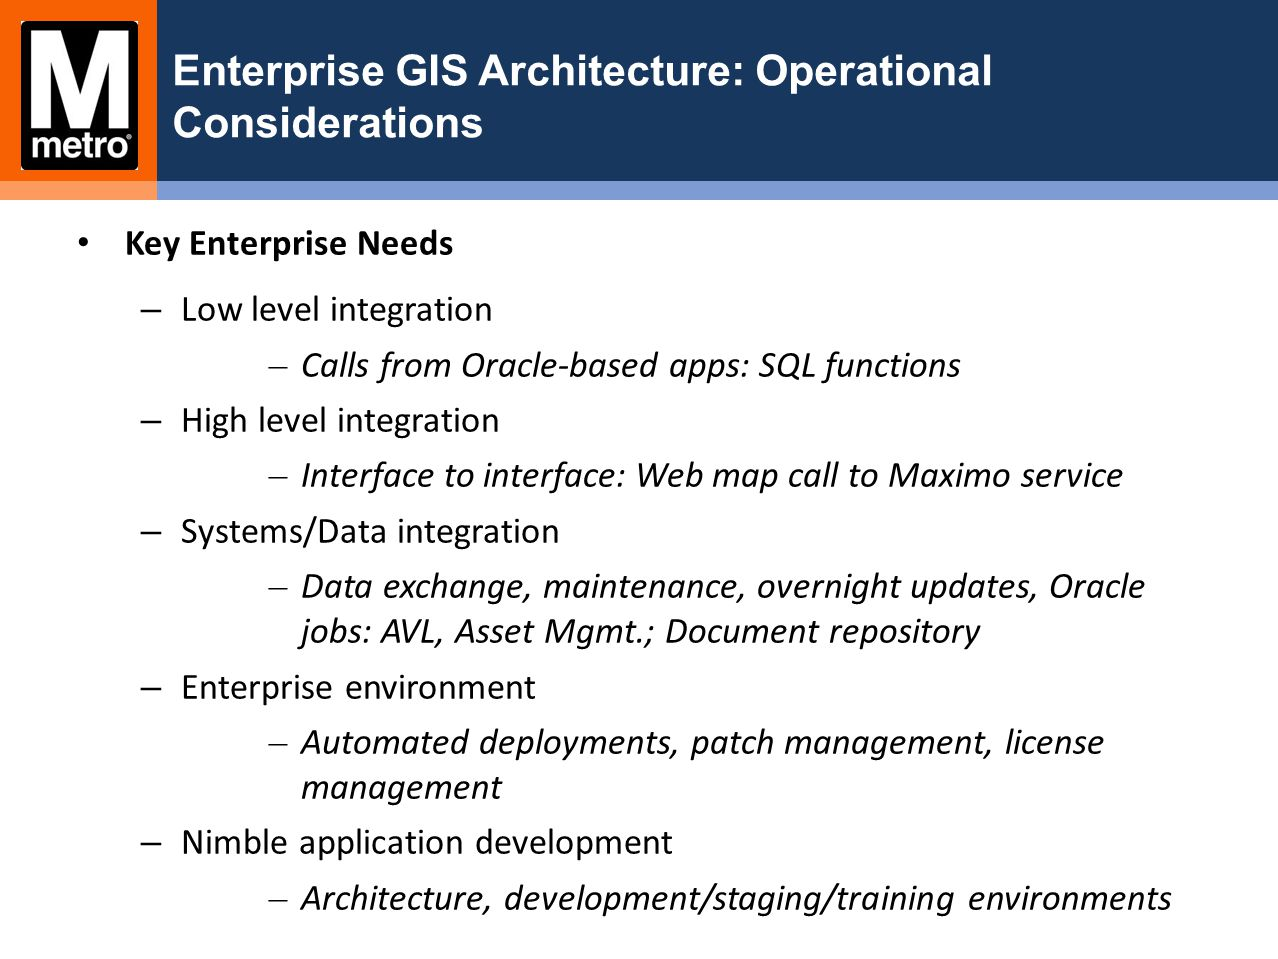 Enterprise GIS Architecture: Operational Considerations